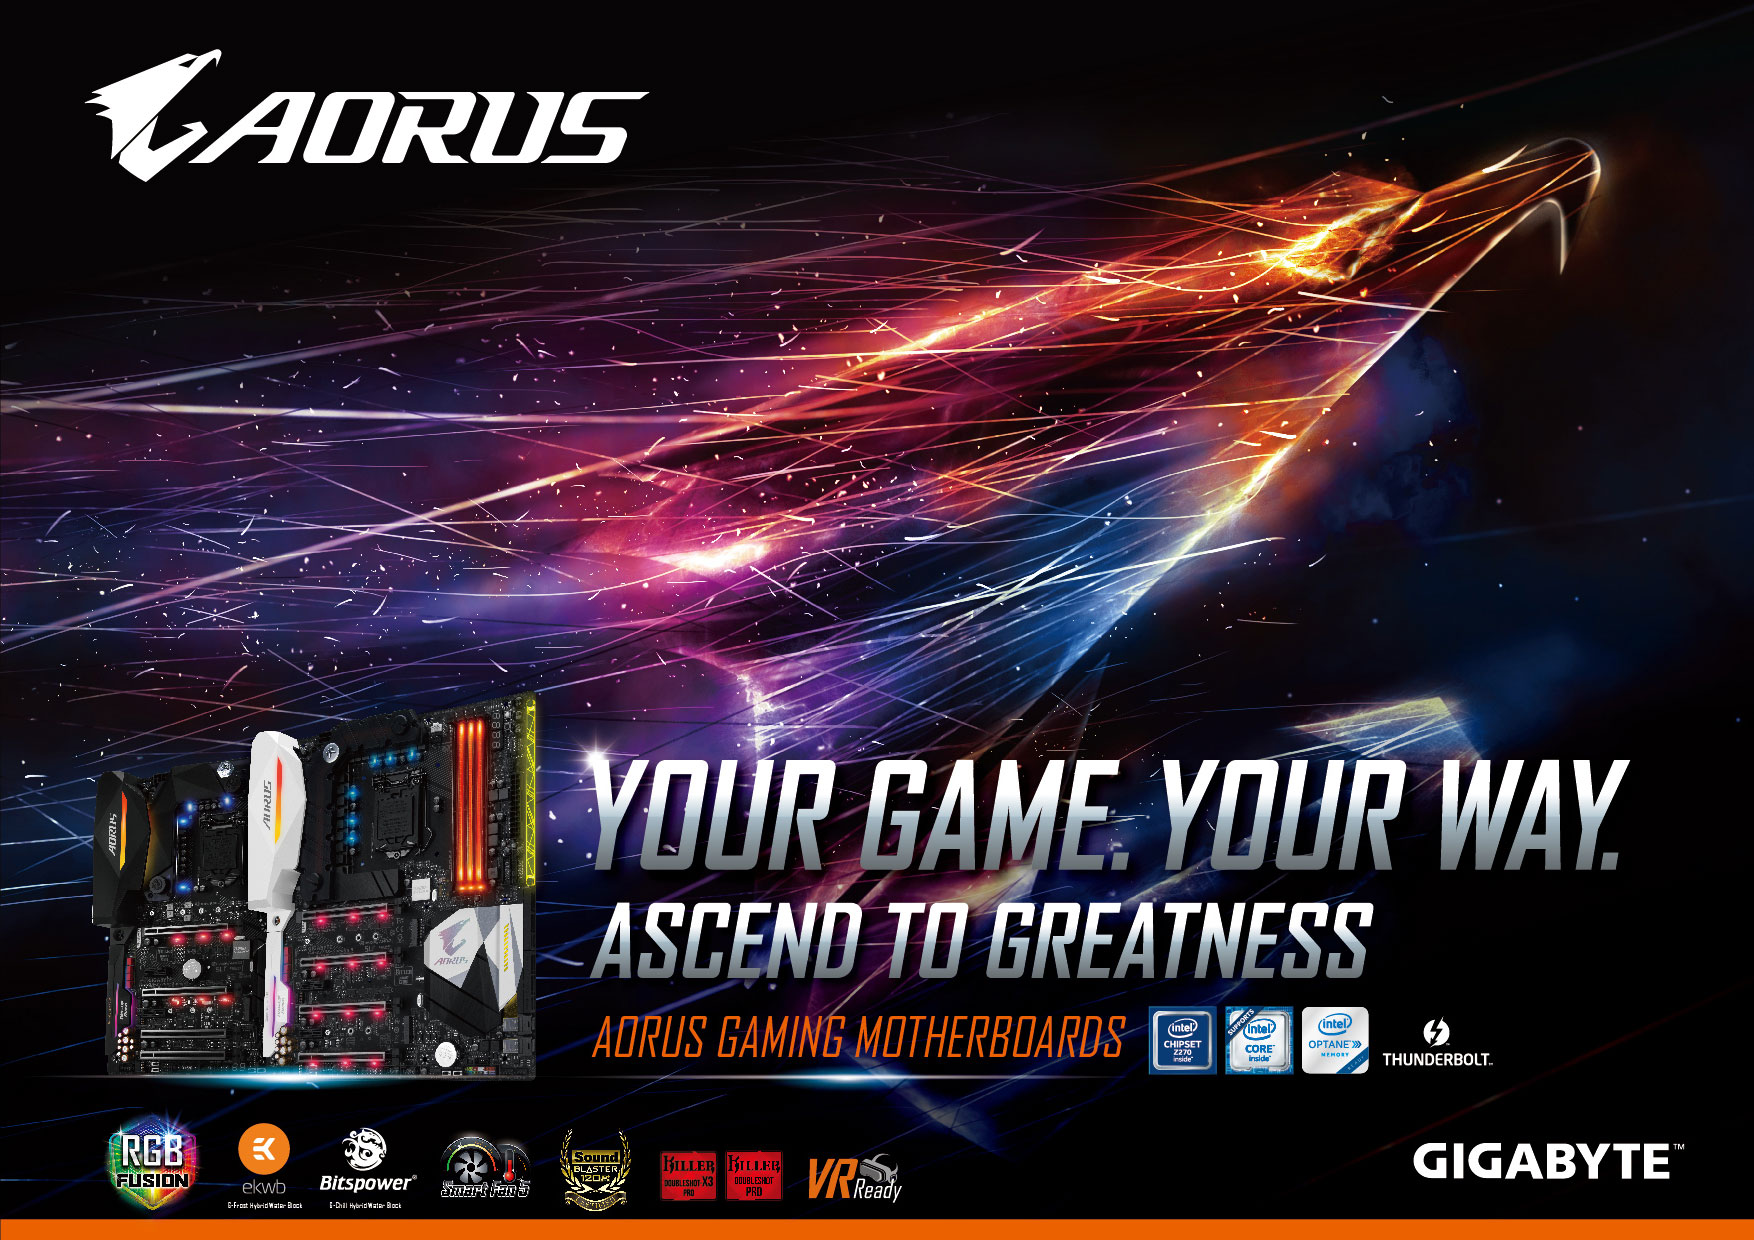 New AORUS Gaming Motherboards